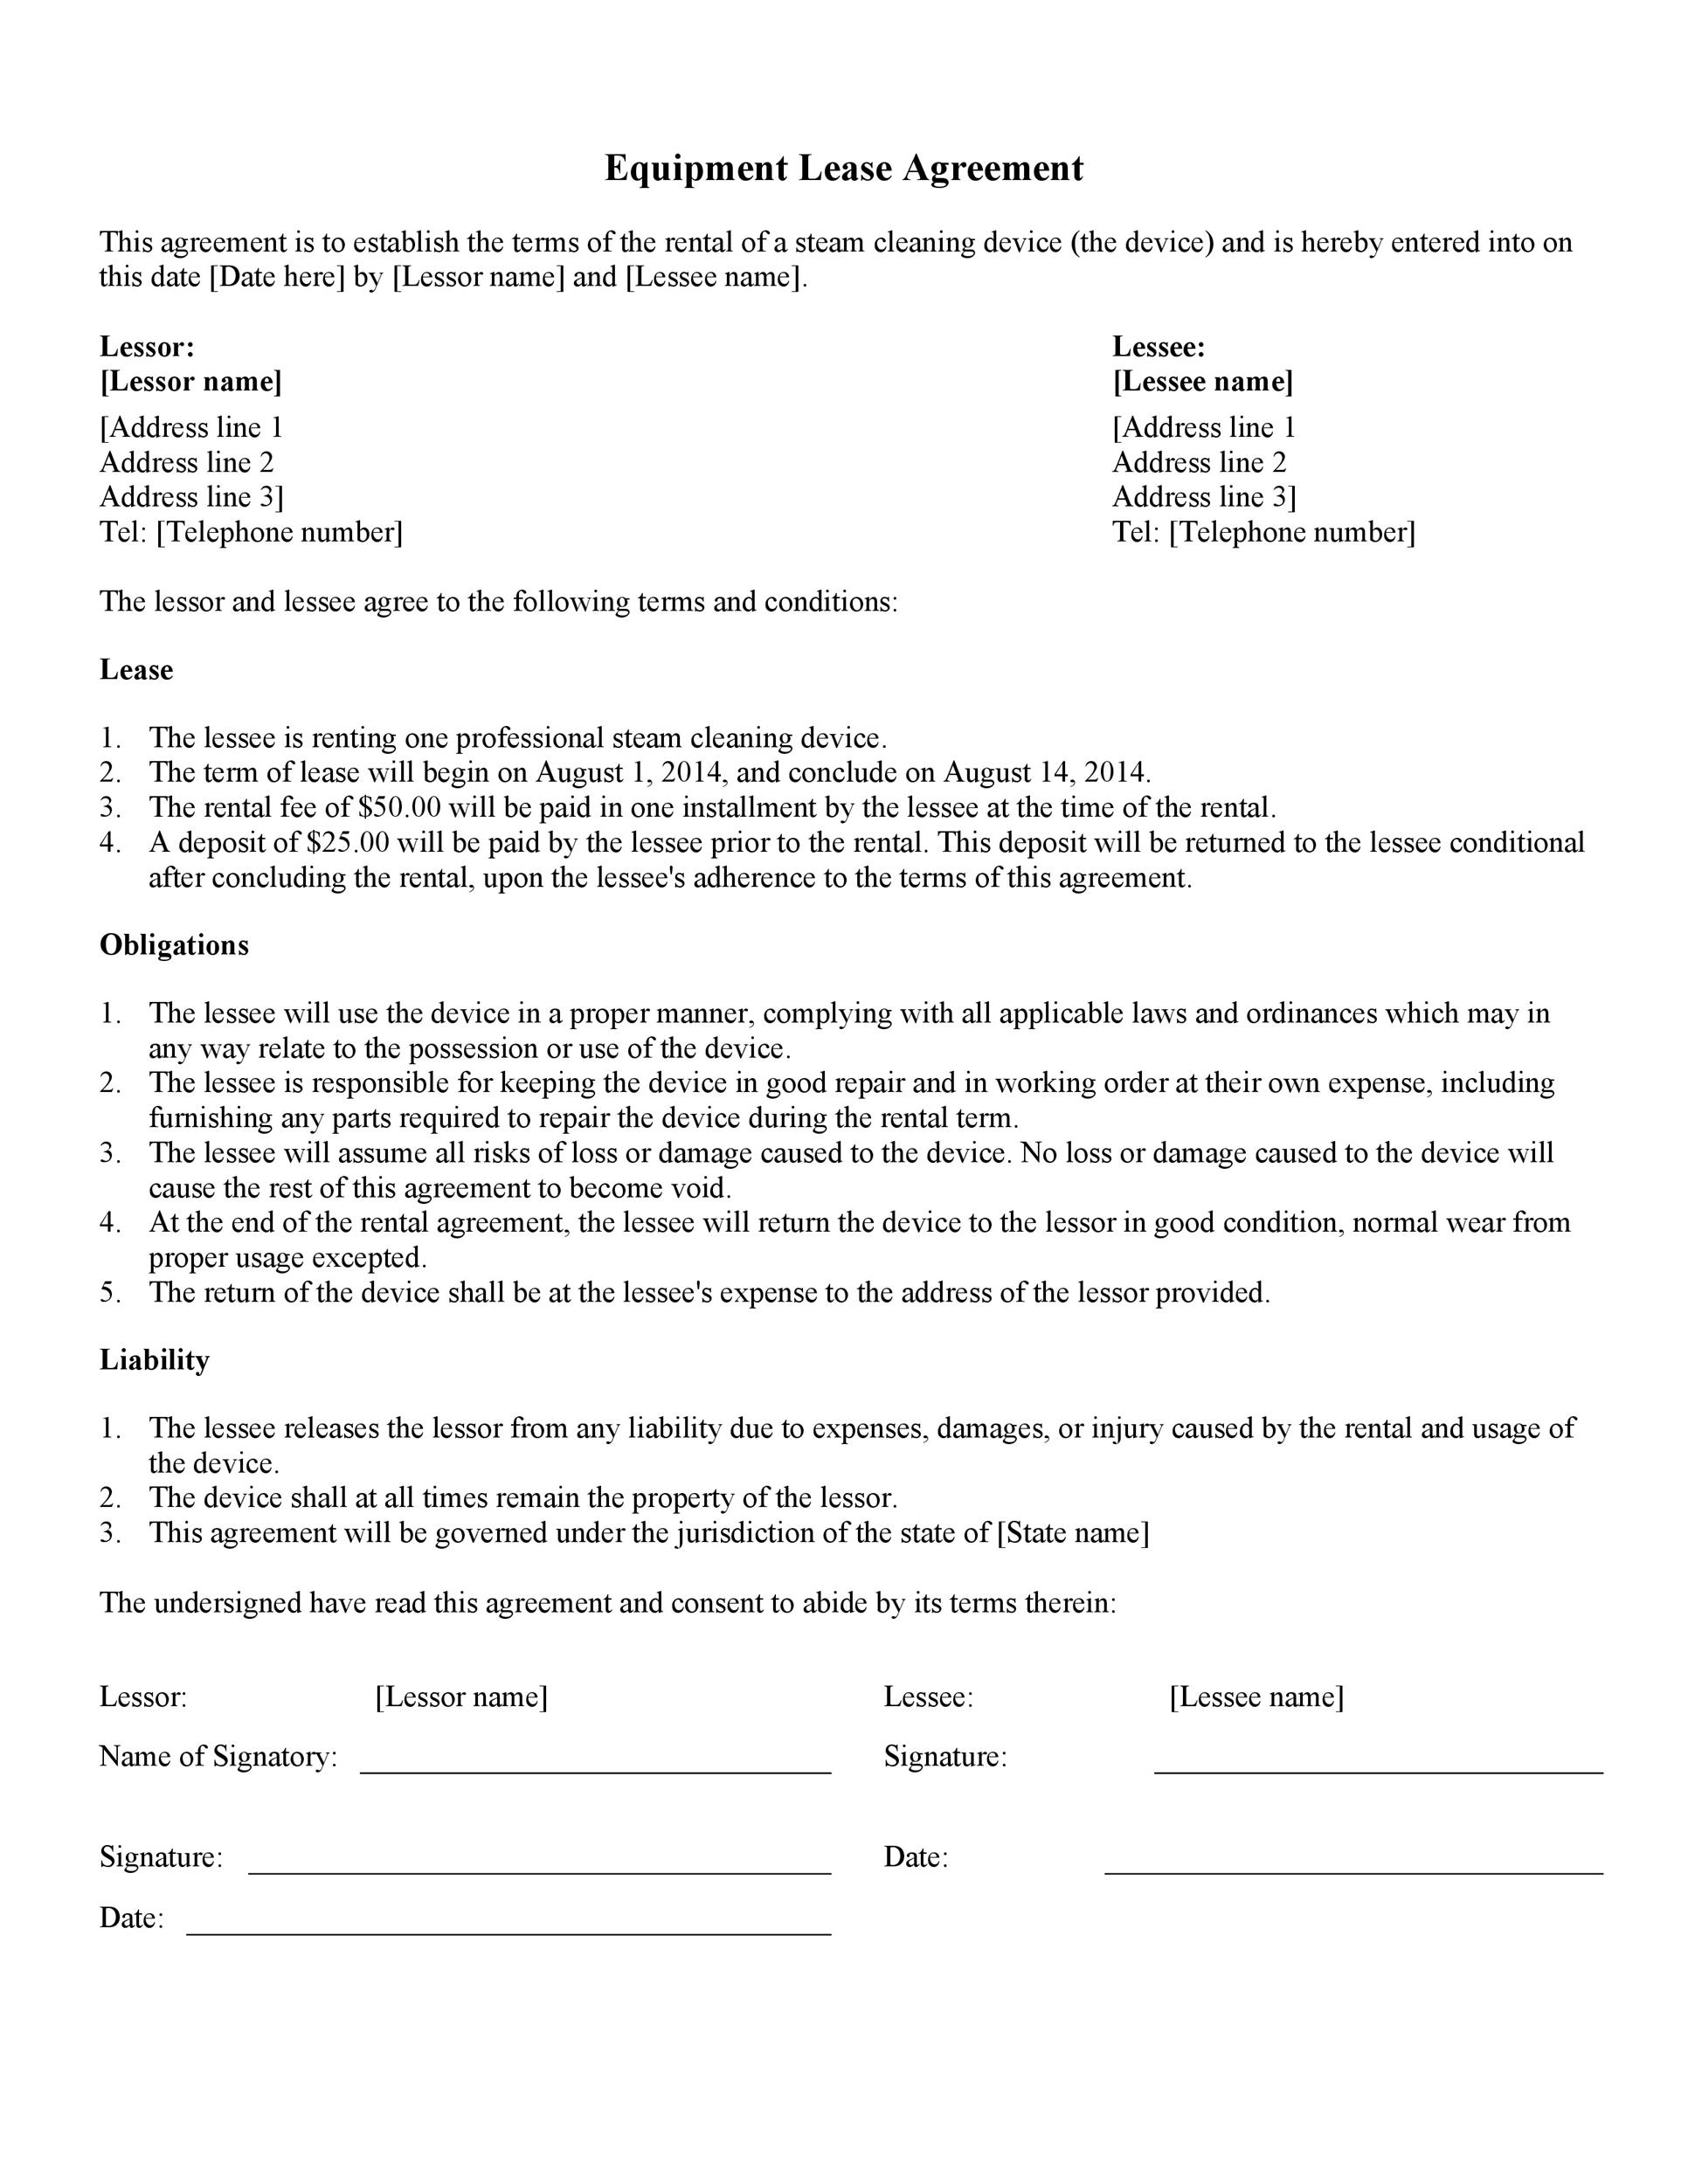 Free equipment lease agreement 33